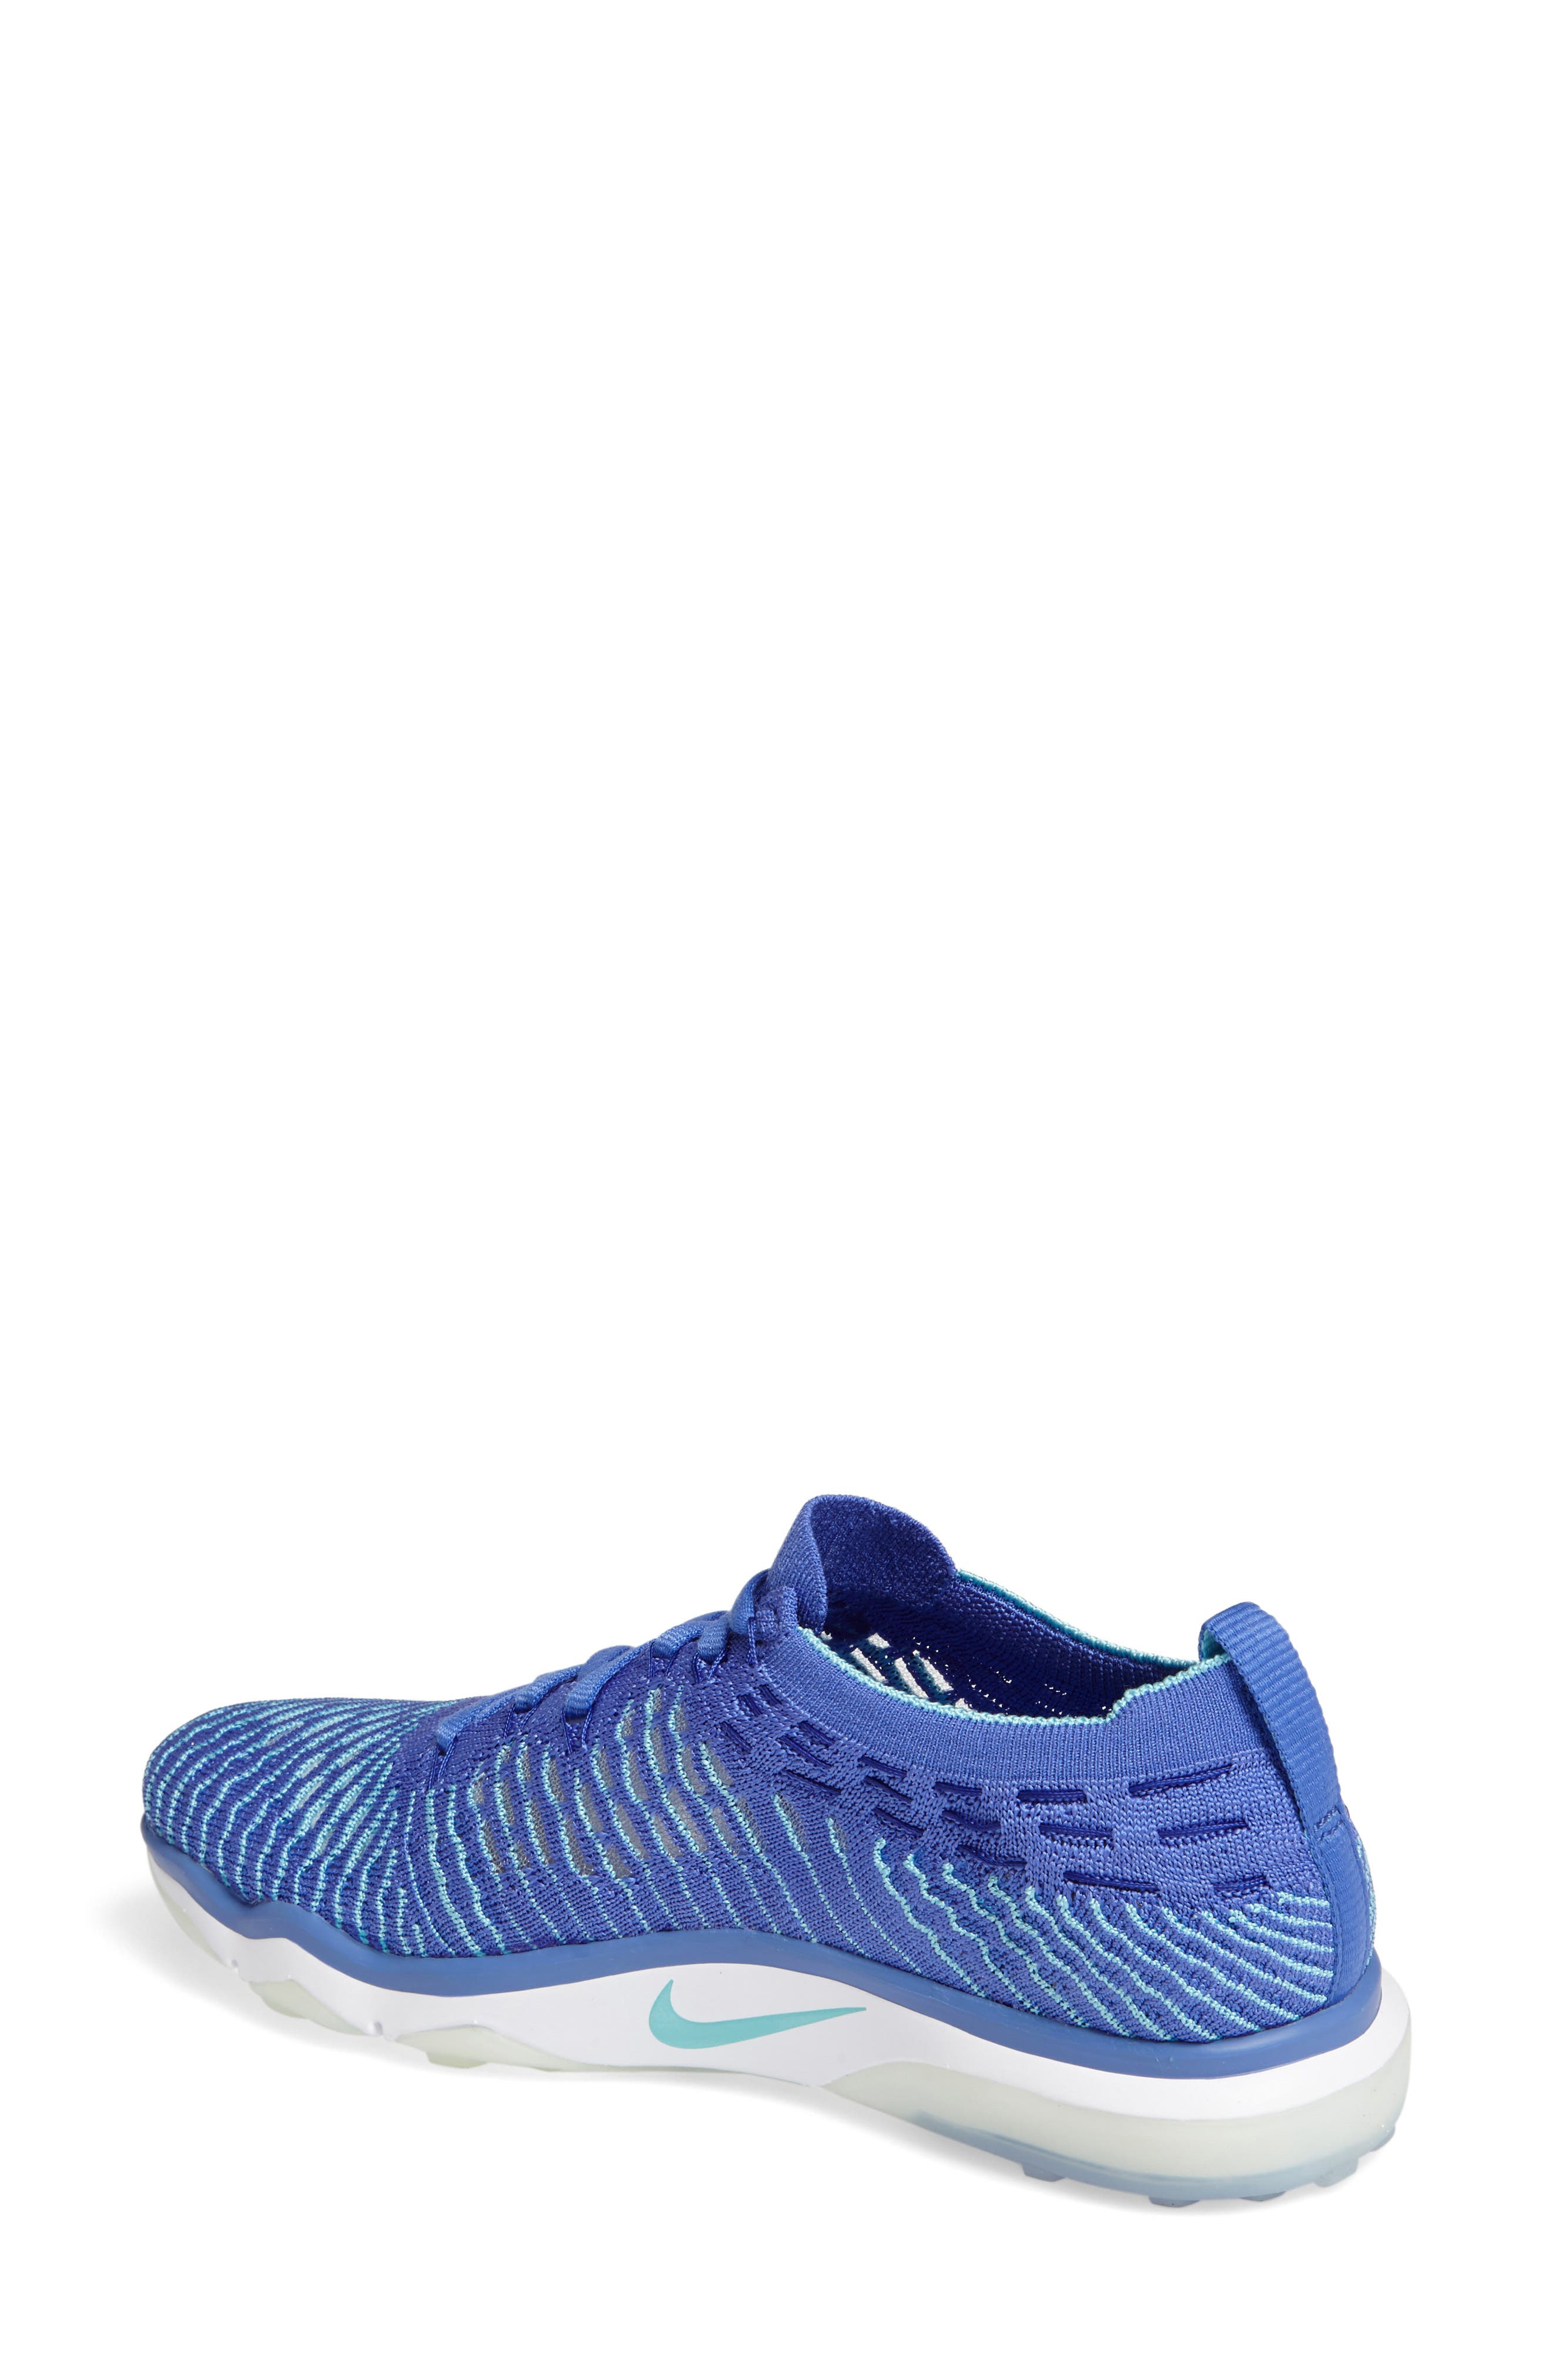 Air Zoom Fearless Flyknit Training Shoe,                             Alternate thumbnail 20, color,